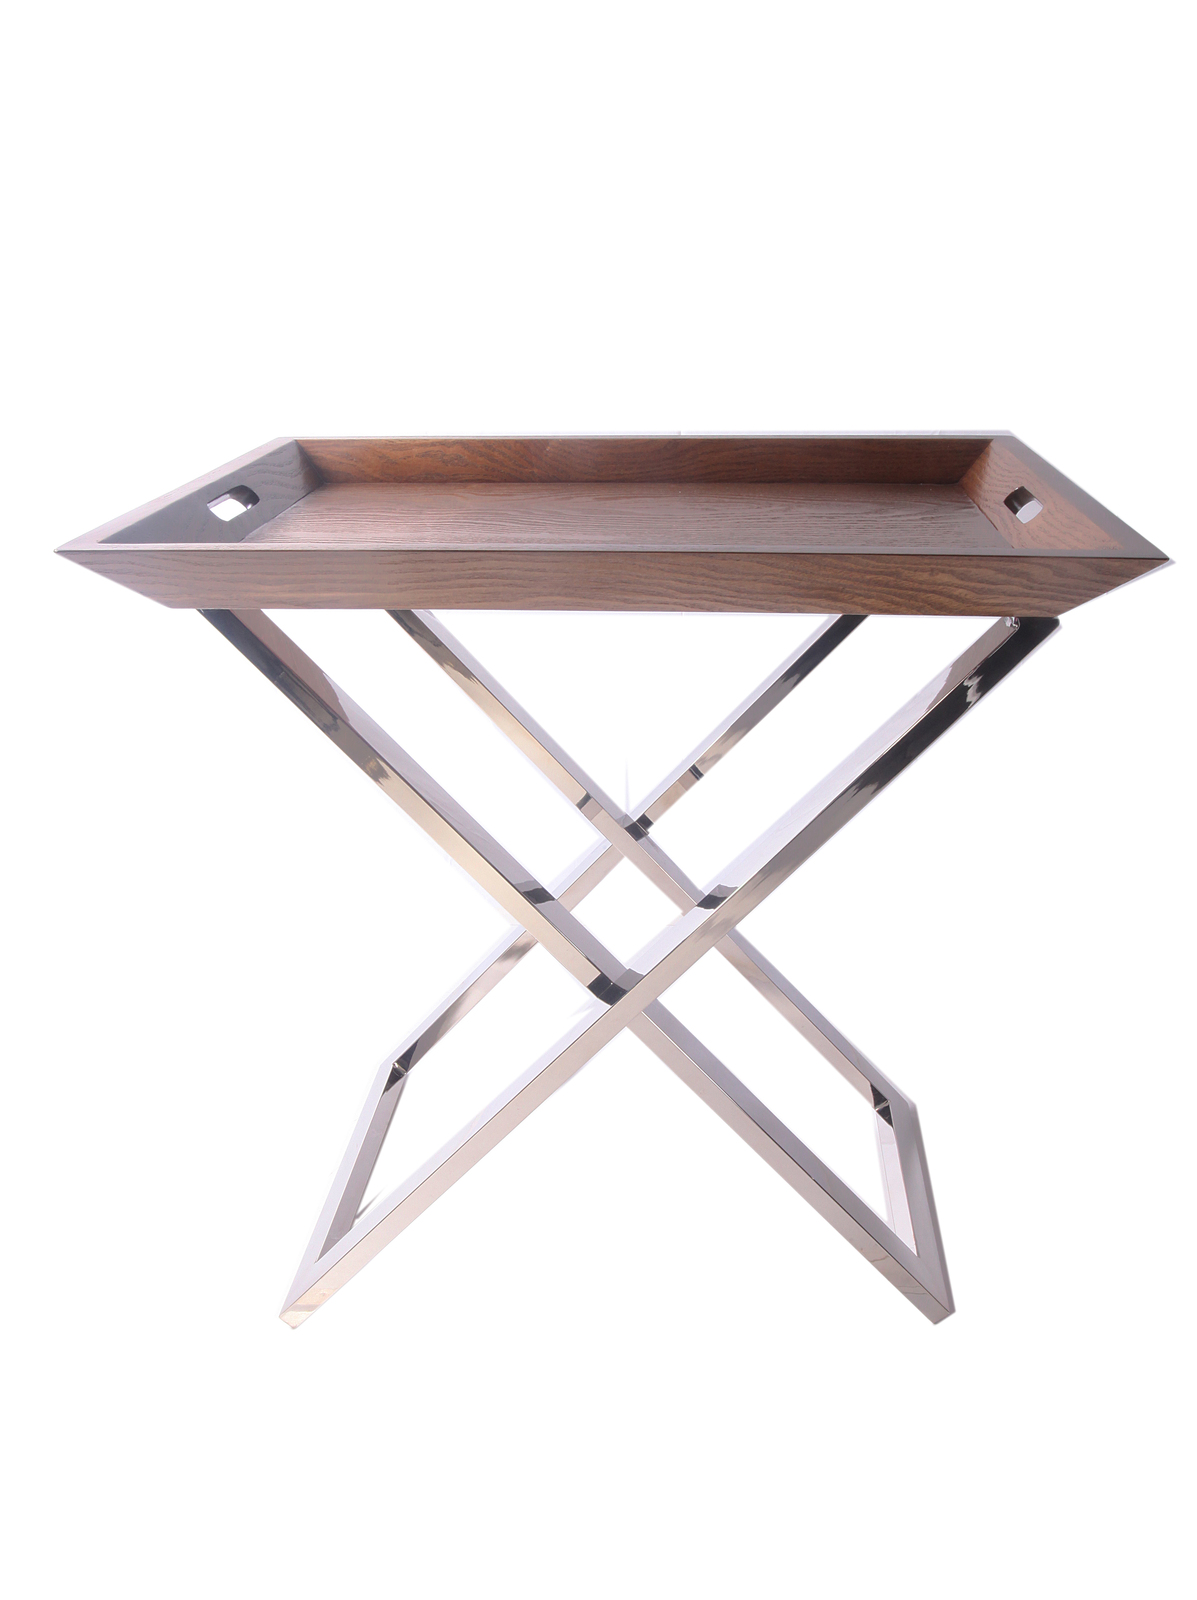 Hotel Luxury Collection Angled Butlers Tray Table With